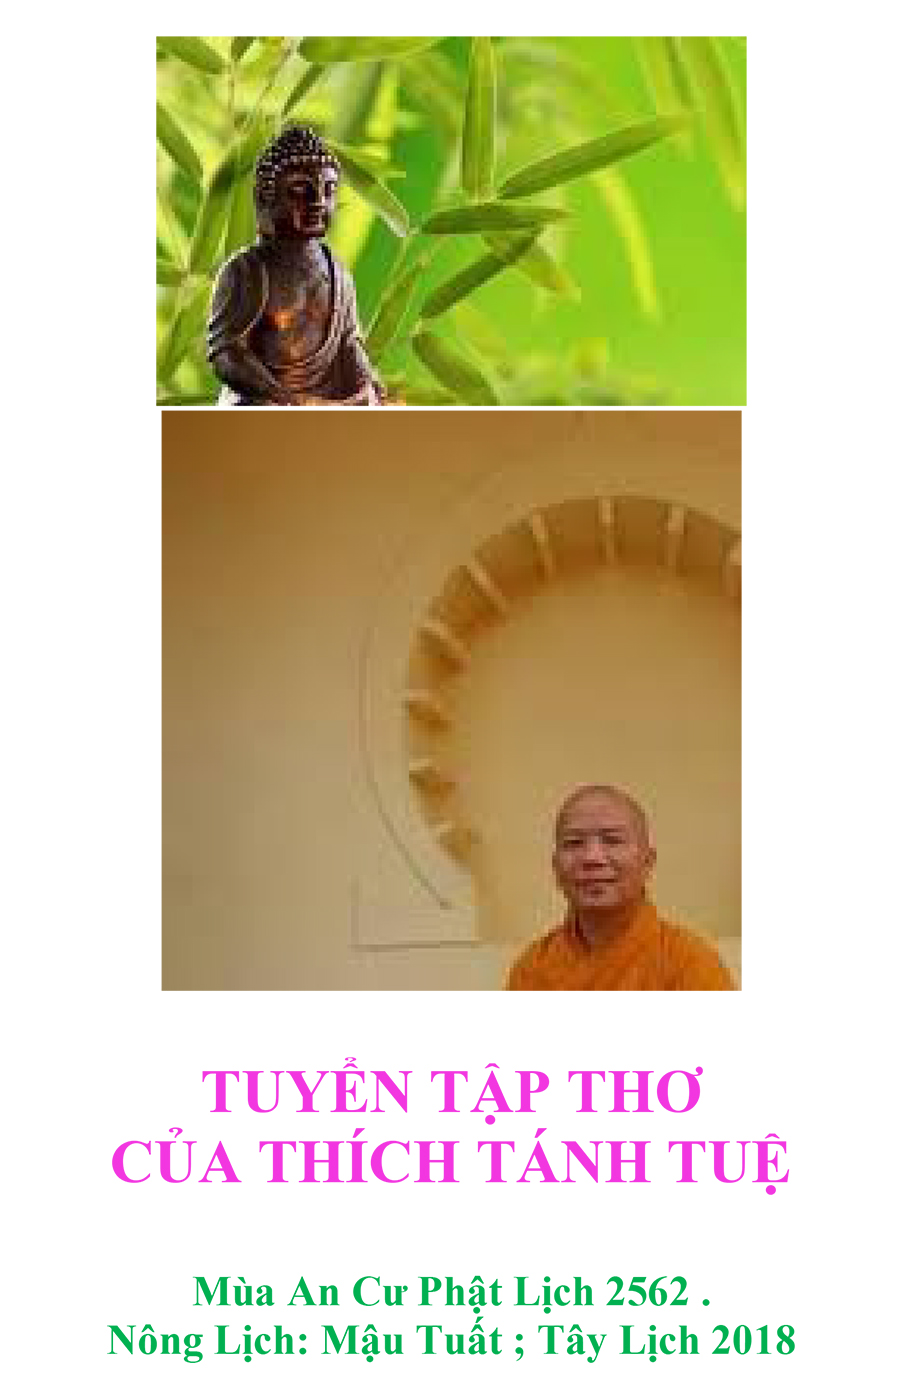 Tuyen Tap Tho_Thich Tanh Tue